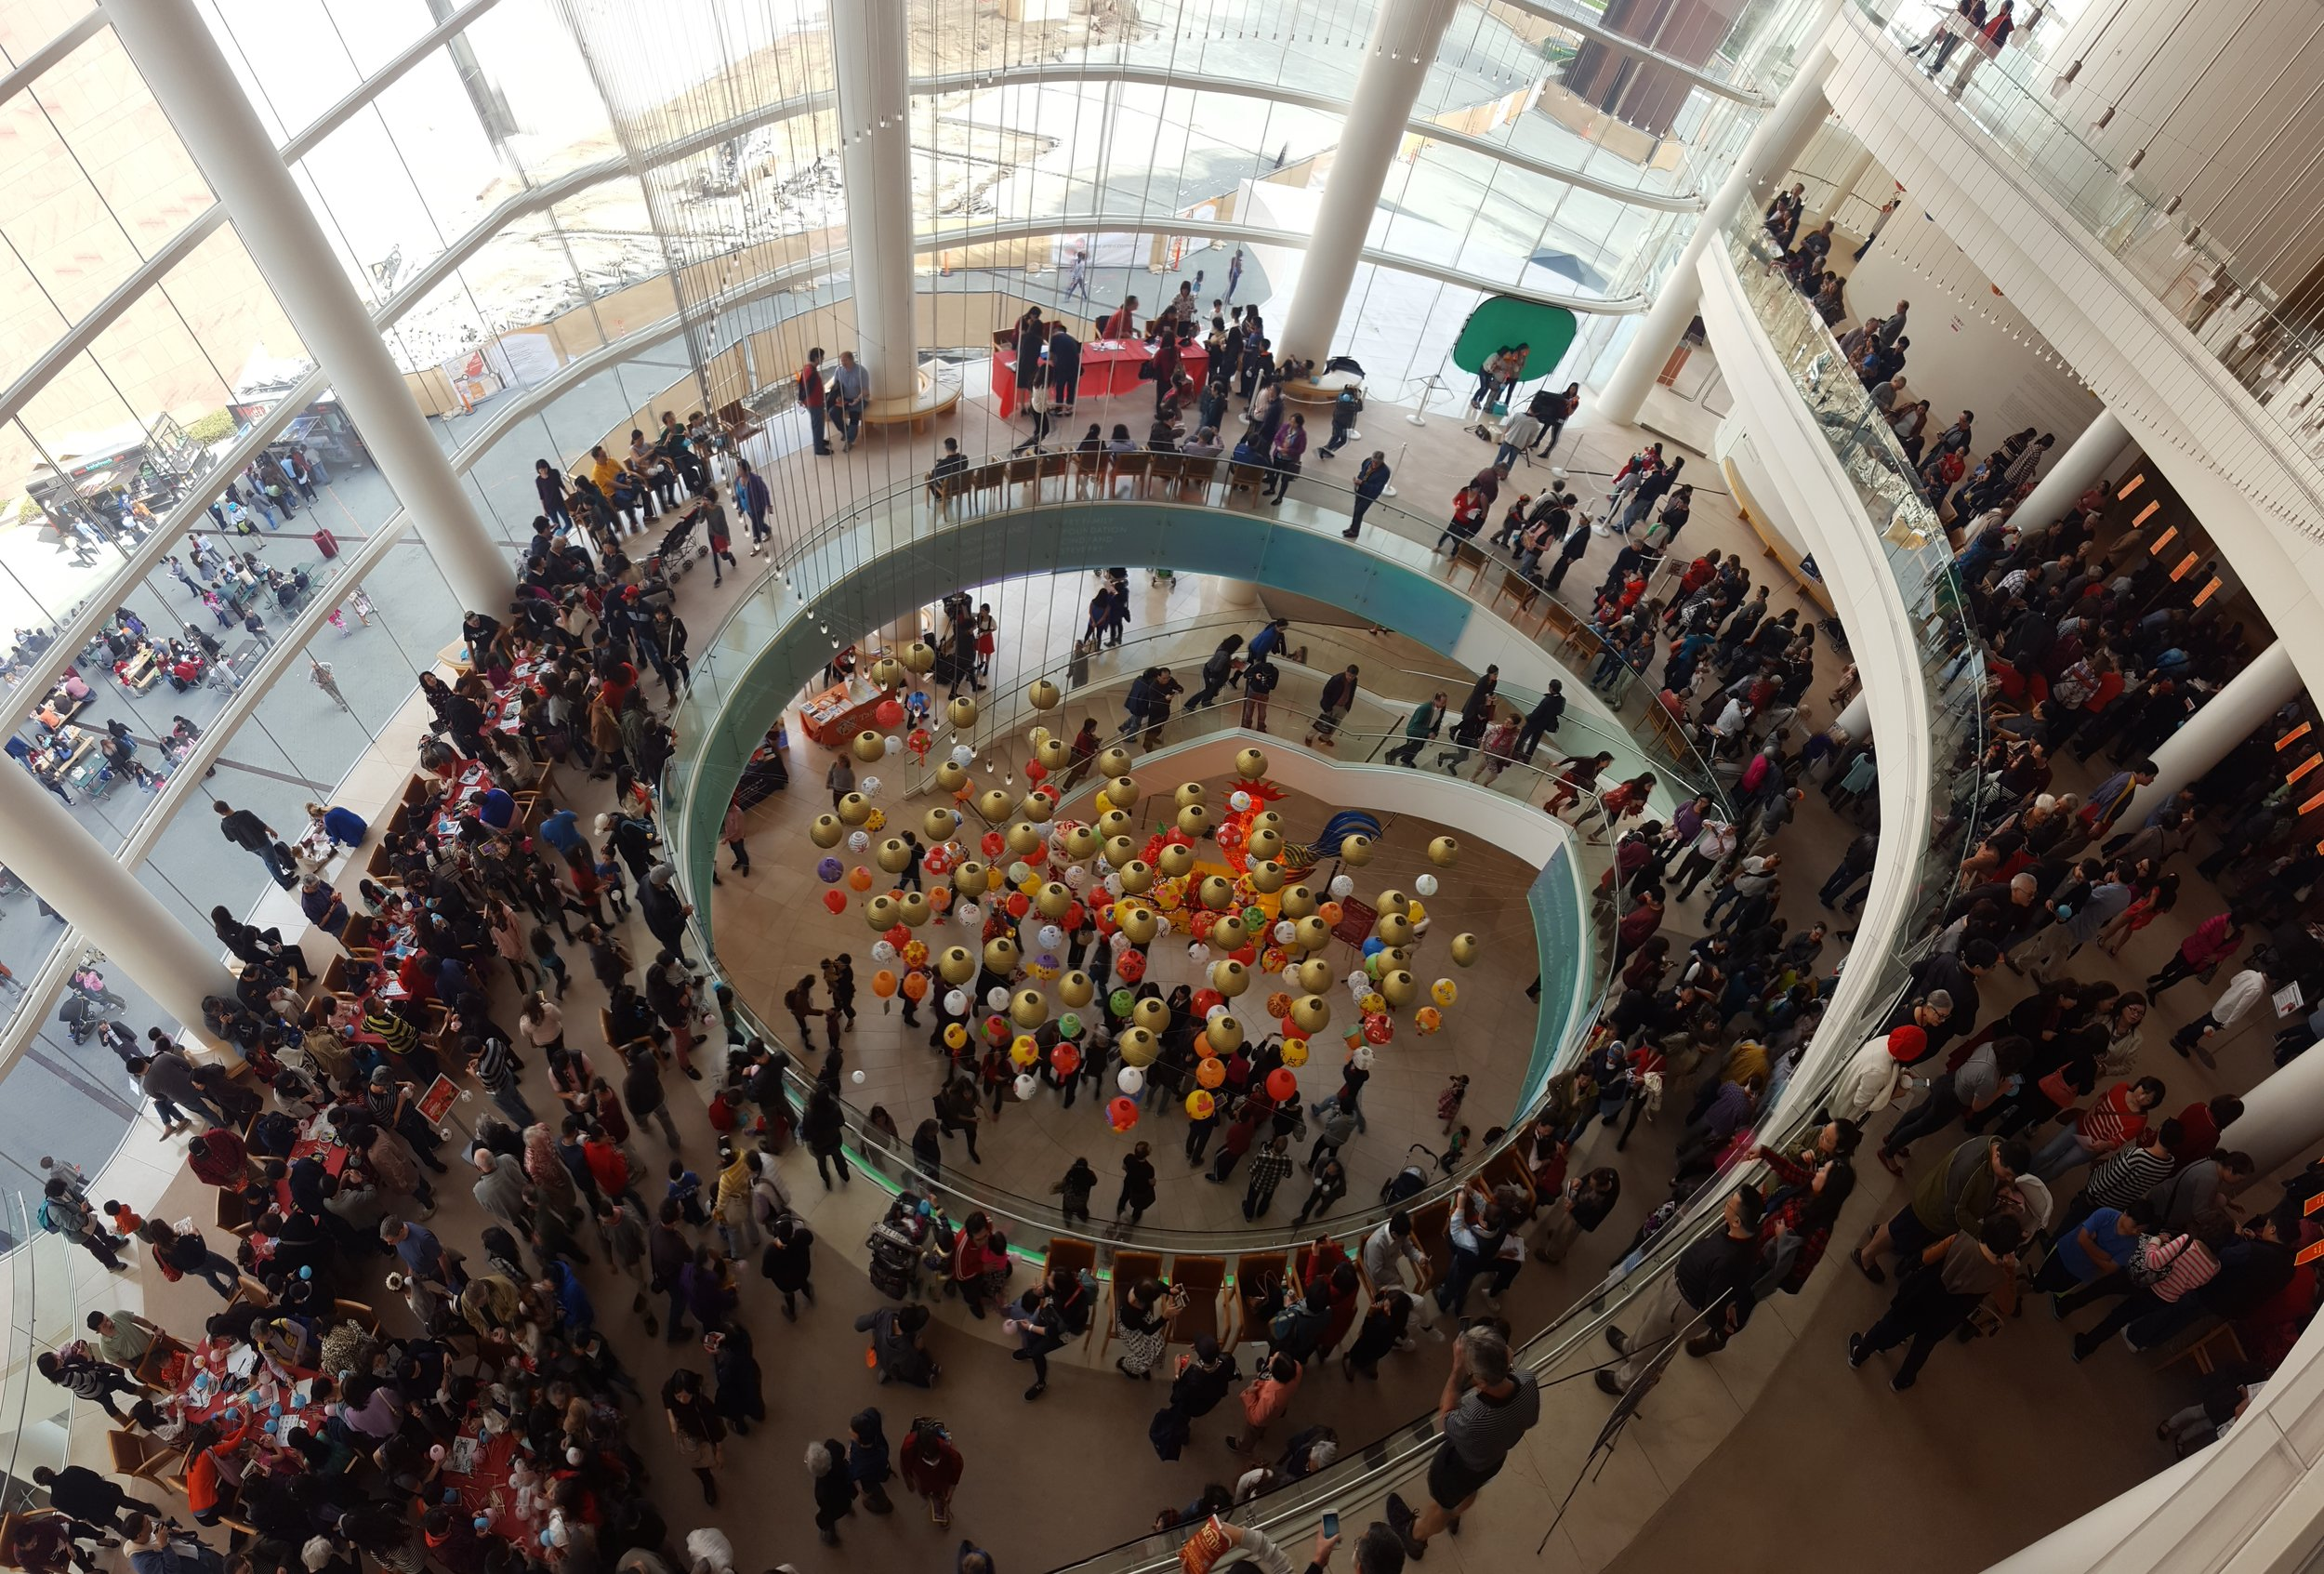 Over 4,300 people came to celebrate the Lunar New Year with us!